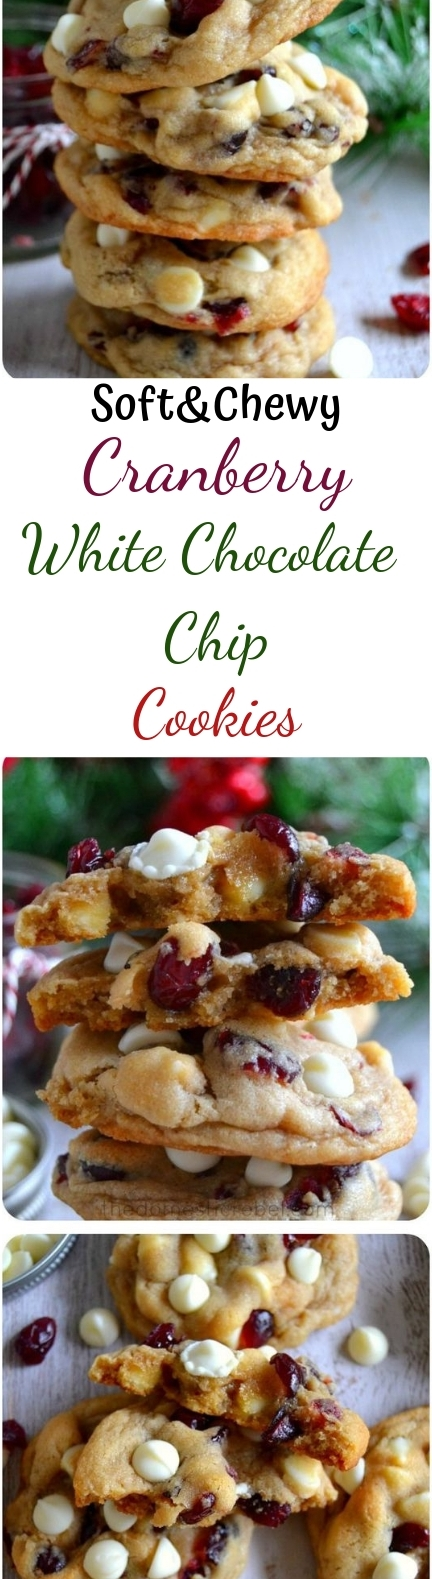 The BEST Soft & Chewy Cranberry White Chocolate Chip Cookies #christmas #cookies